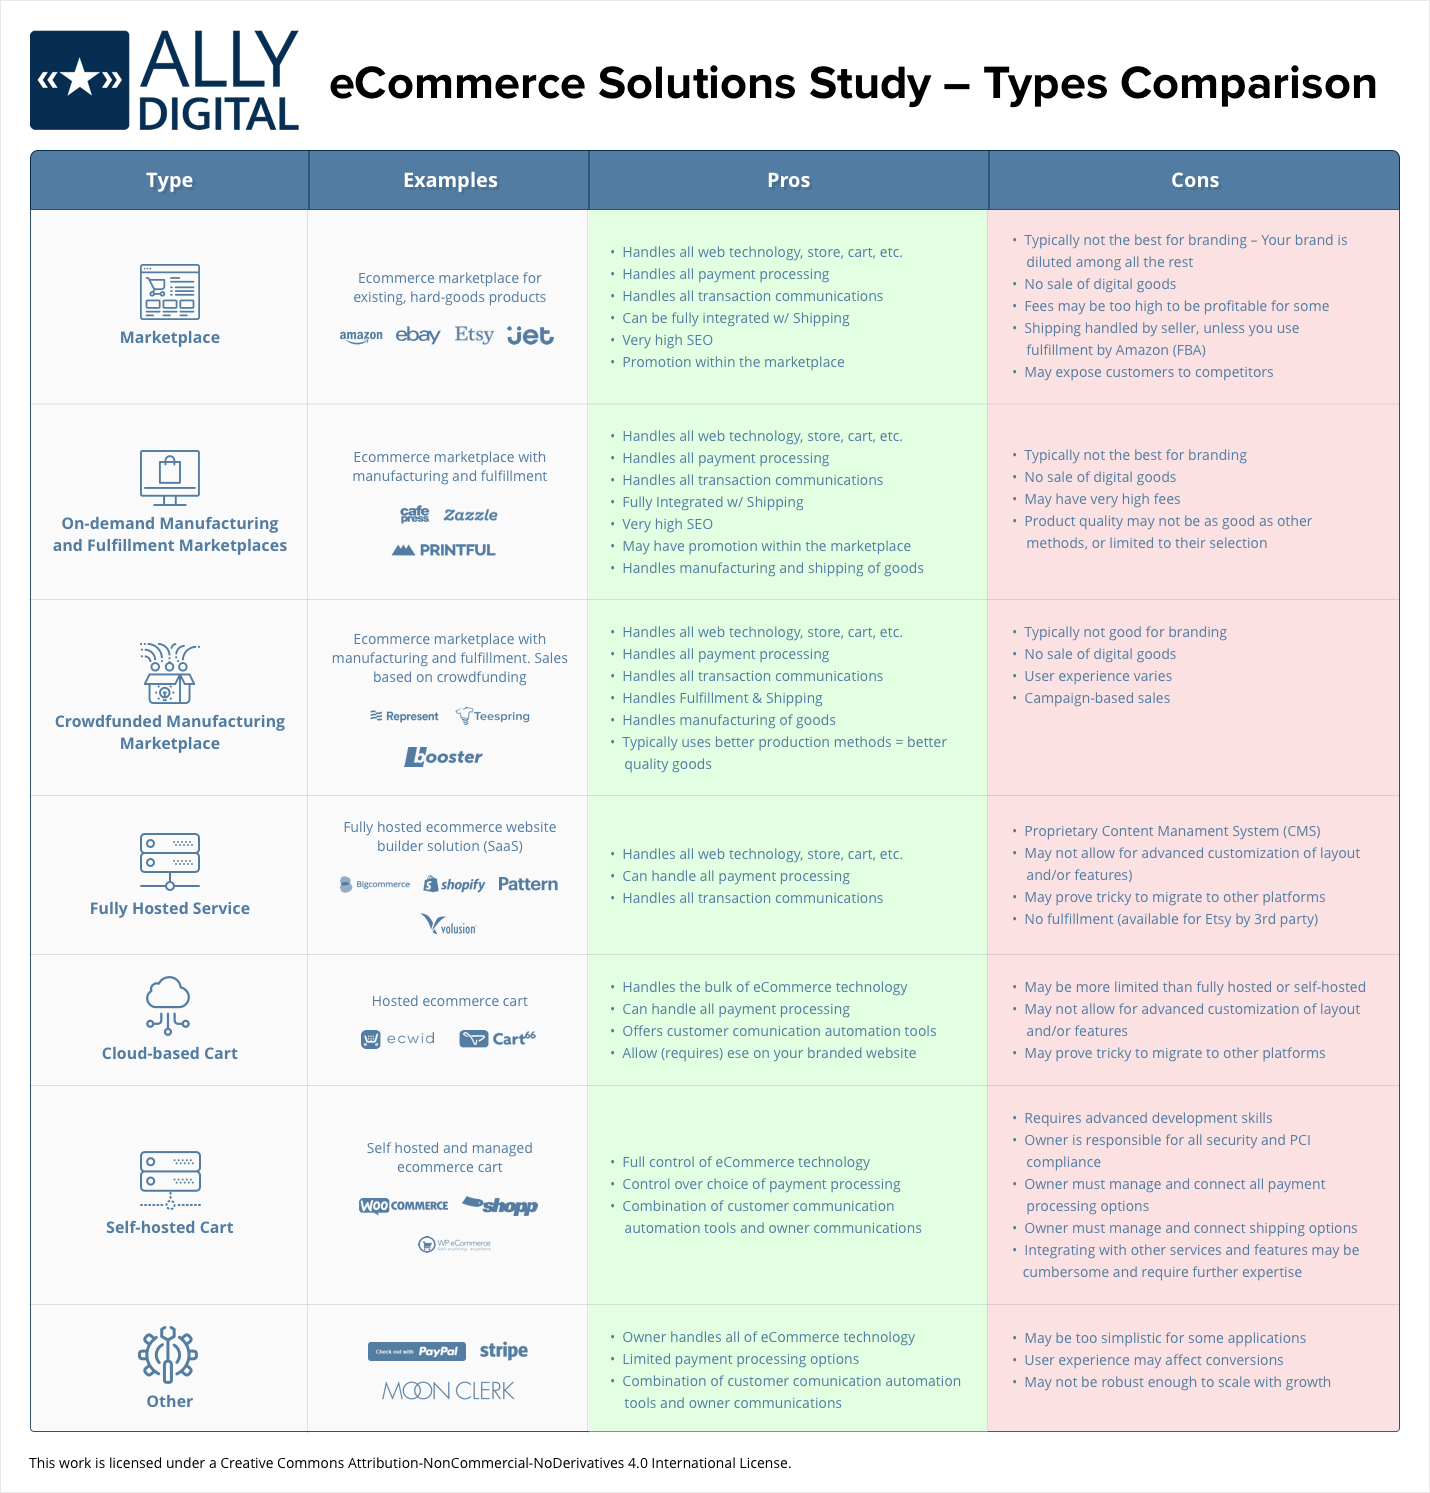 Ecommerce solutions study ally digital 1